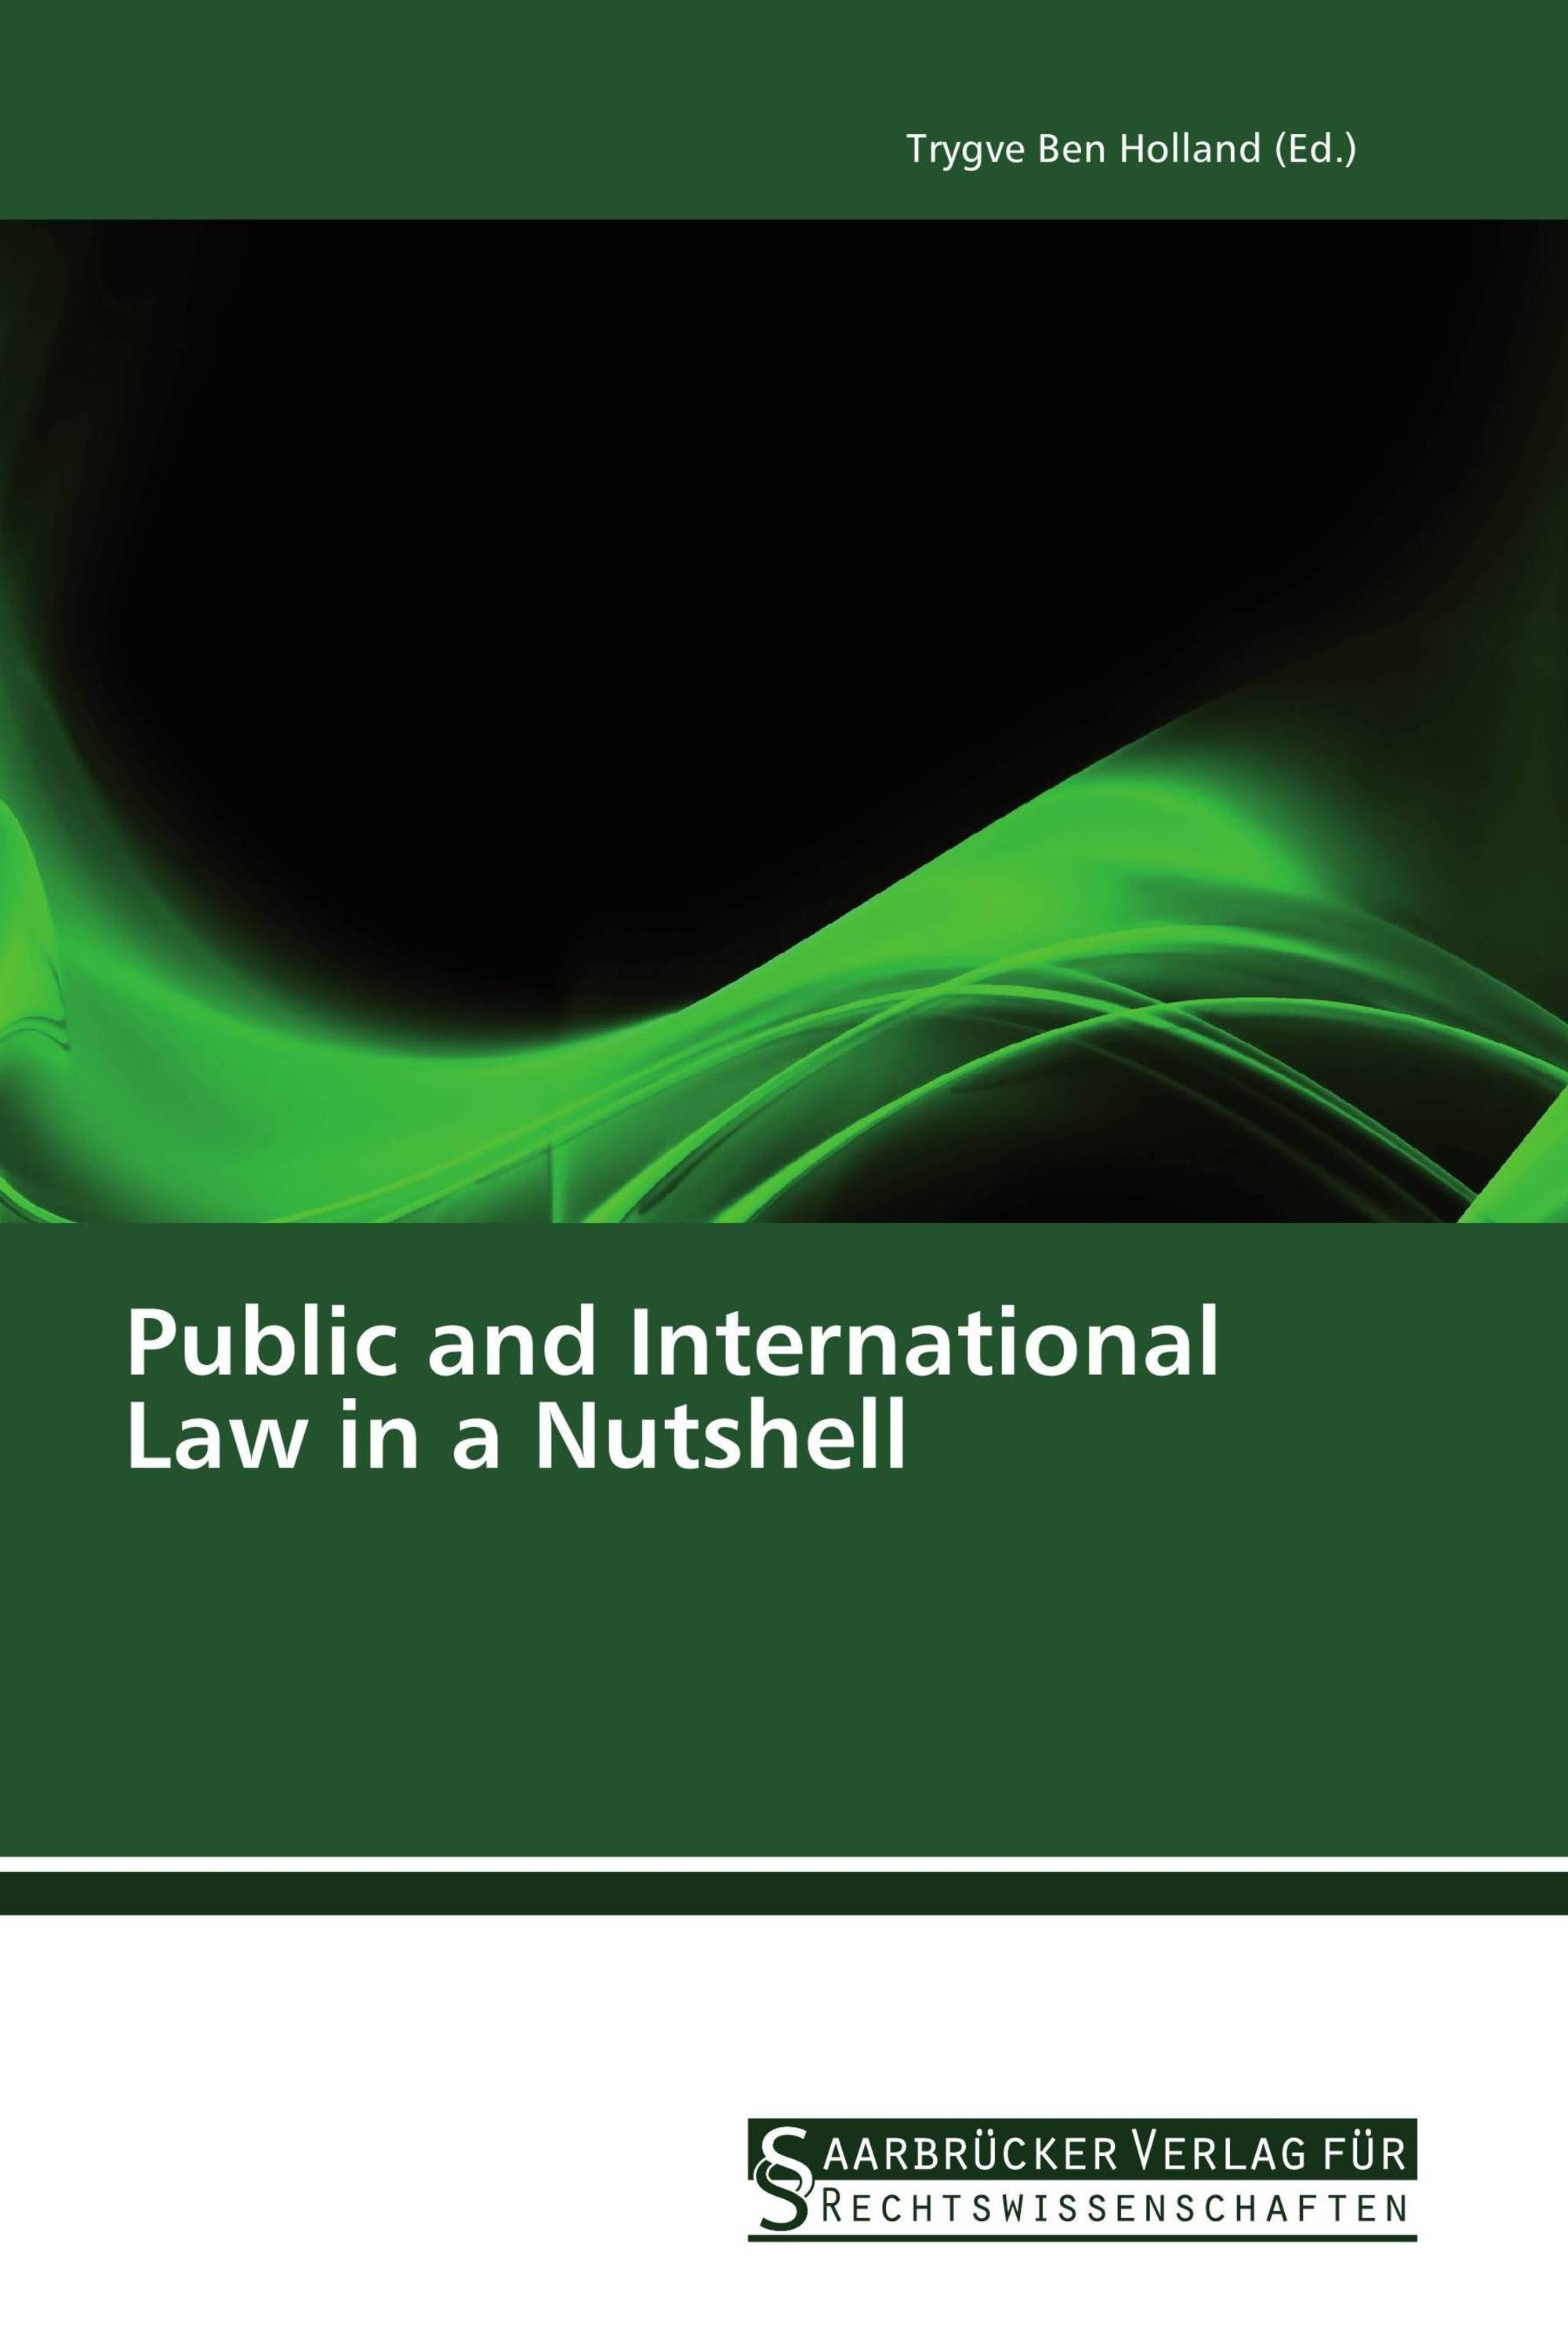 Public and International Law in a Nutshell